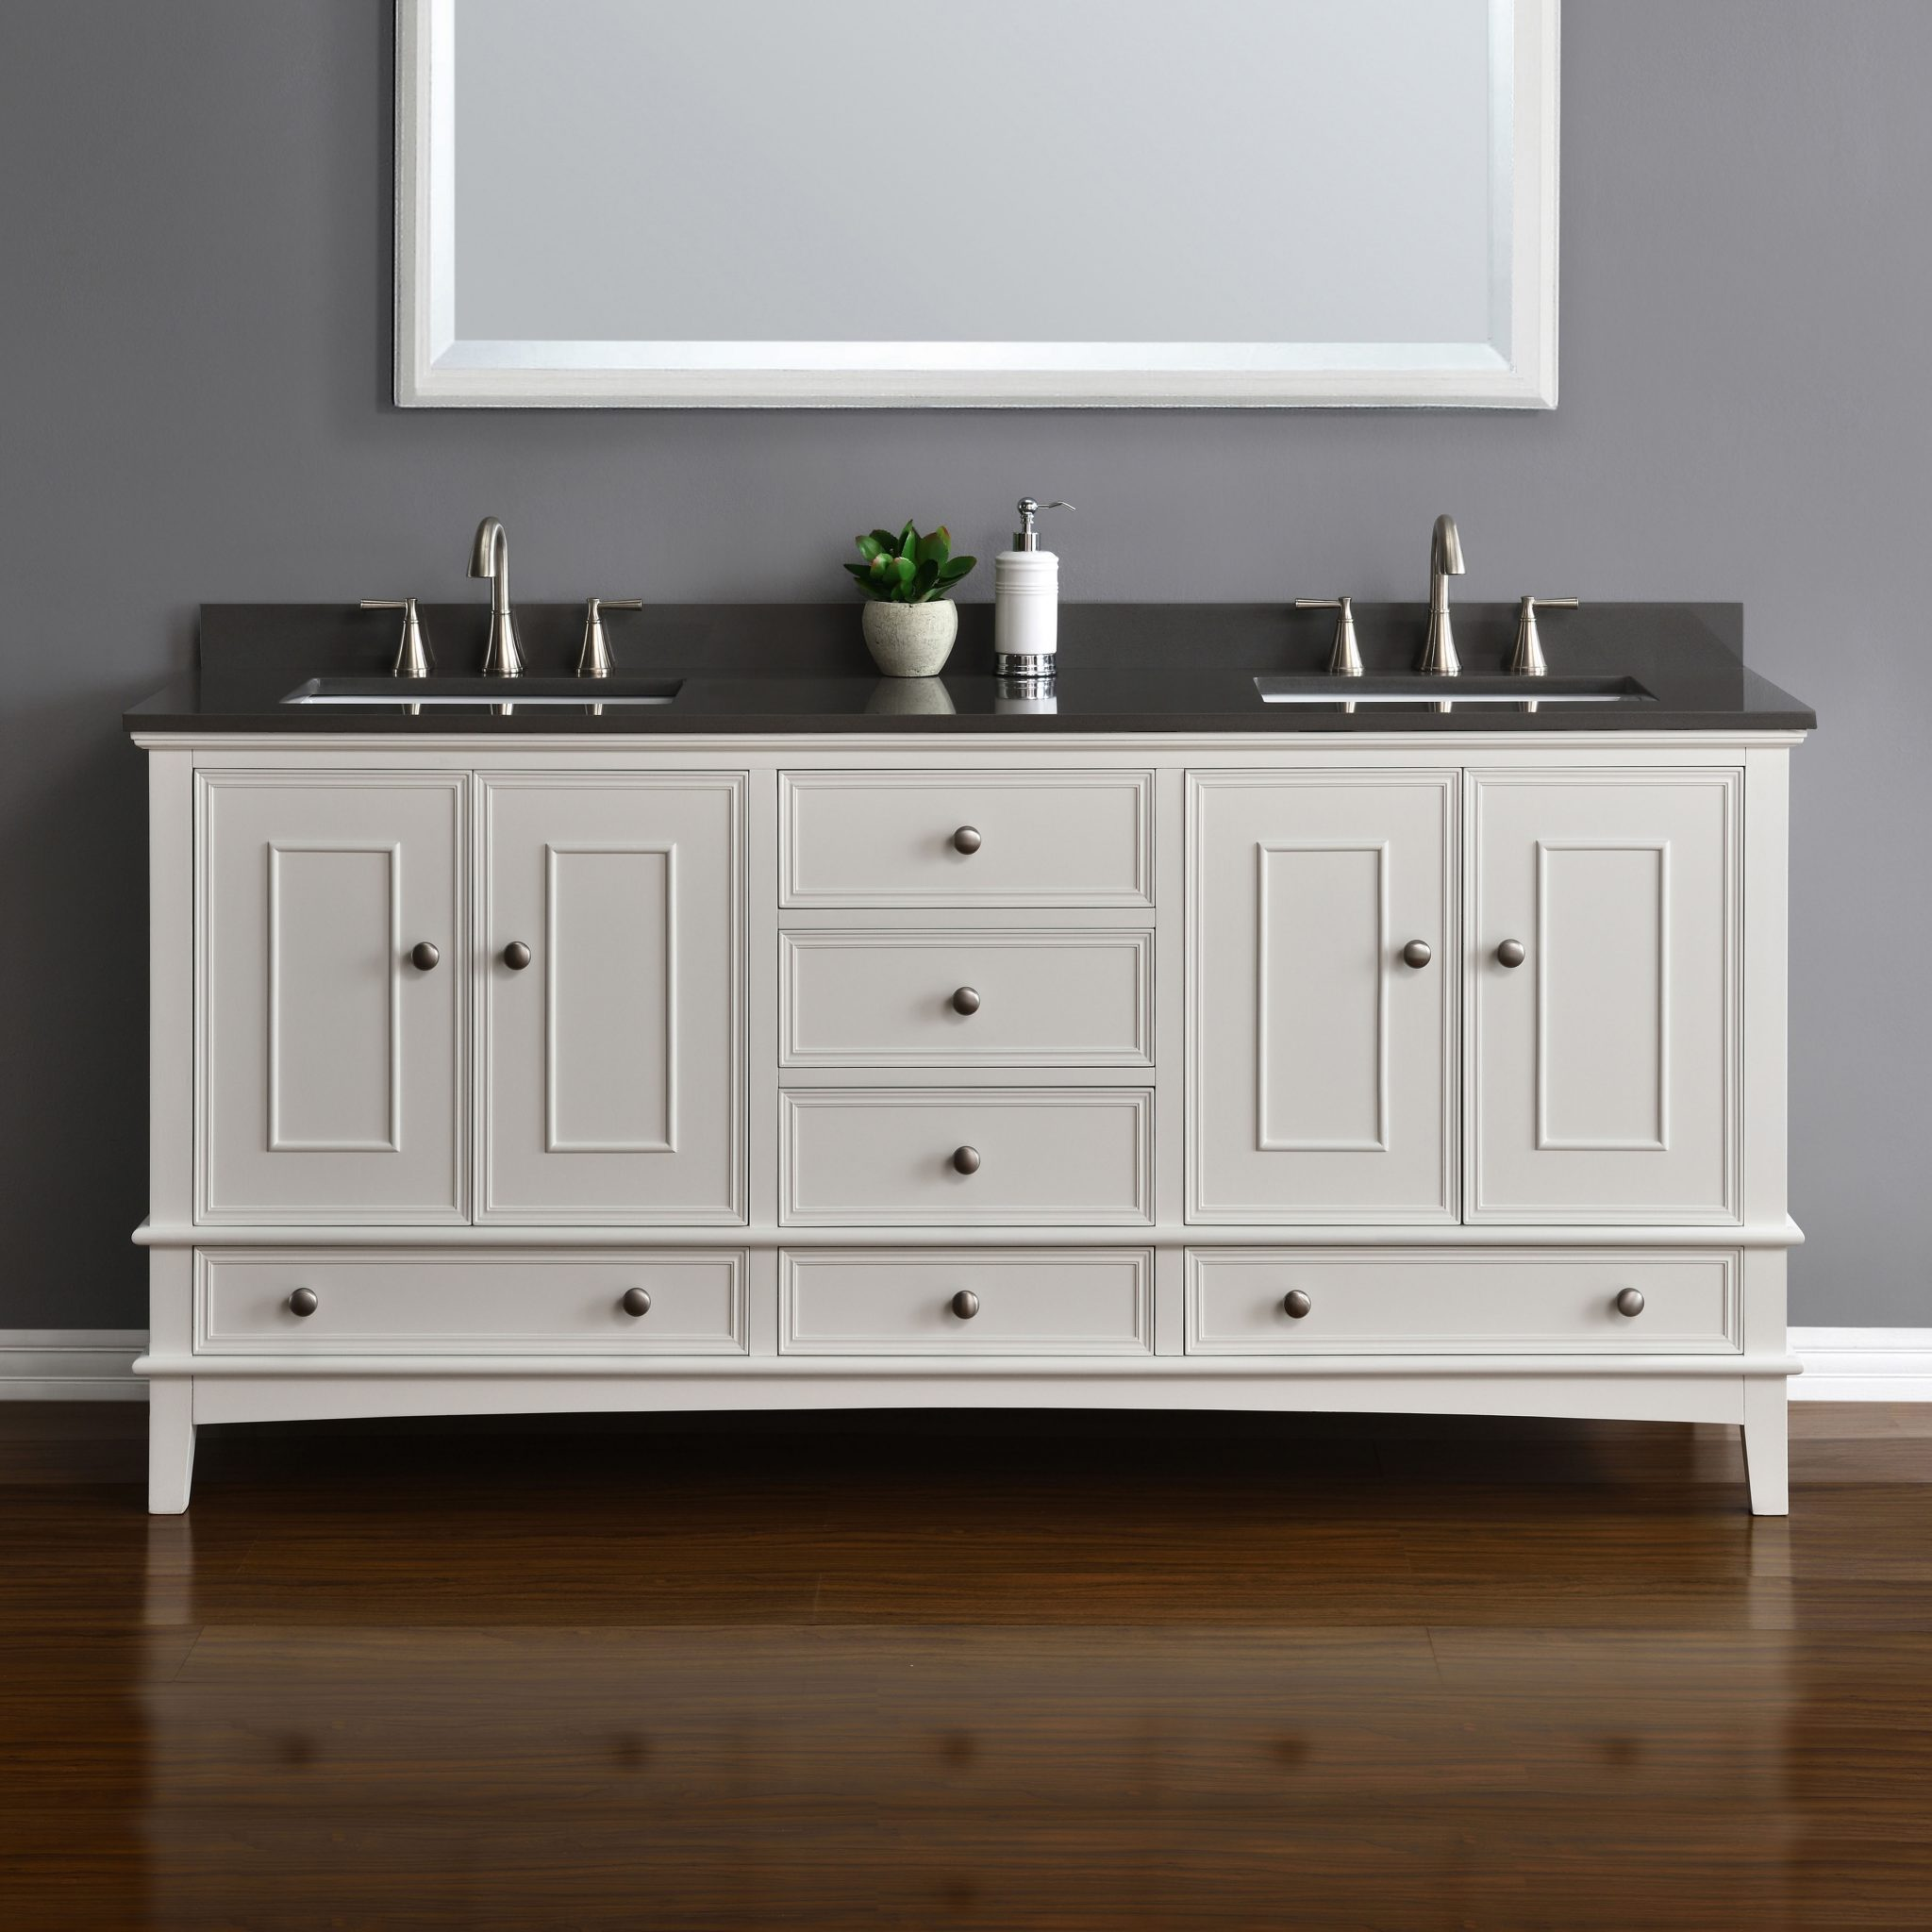 mission camden furniture sink hills vanity dsc product double